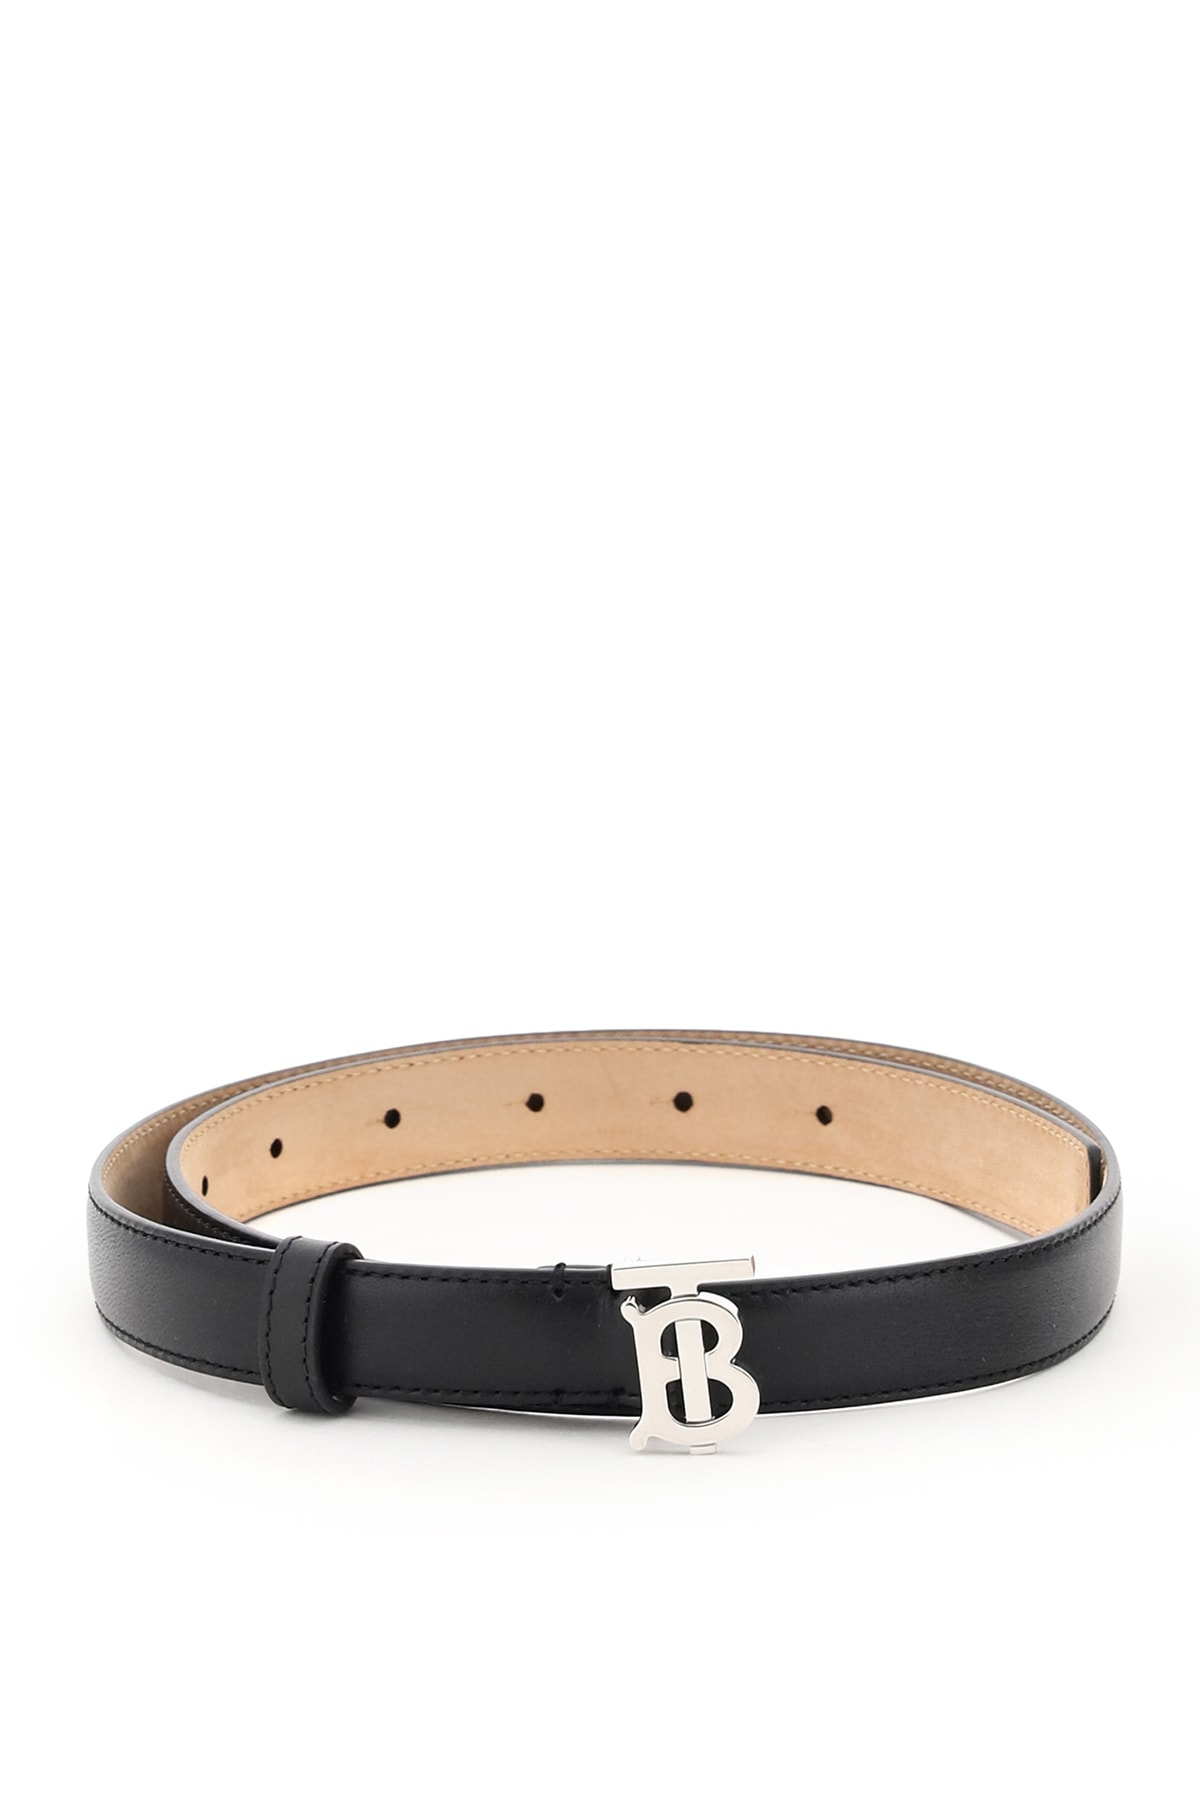 Burberry TB LEATHER BELT 20